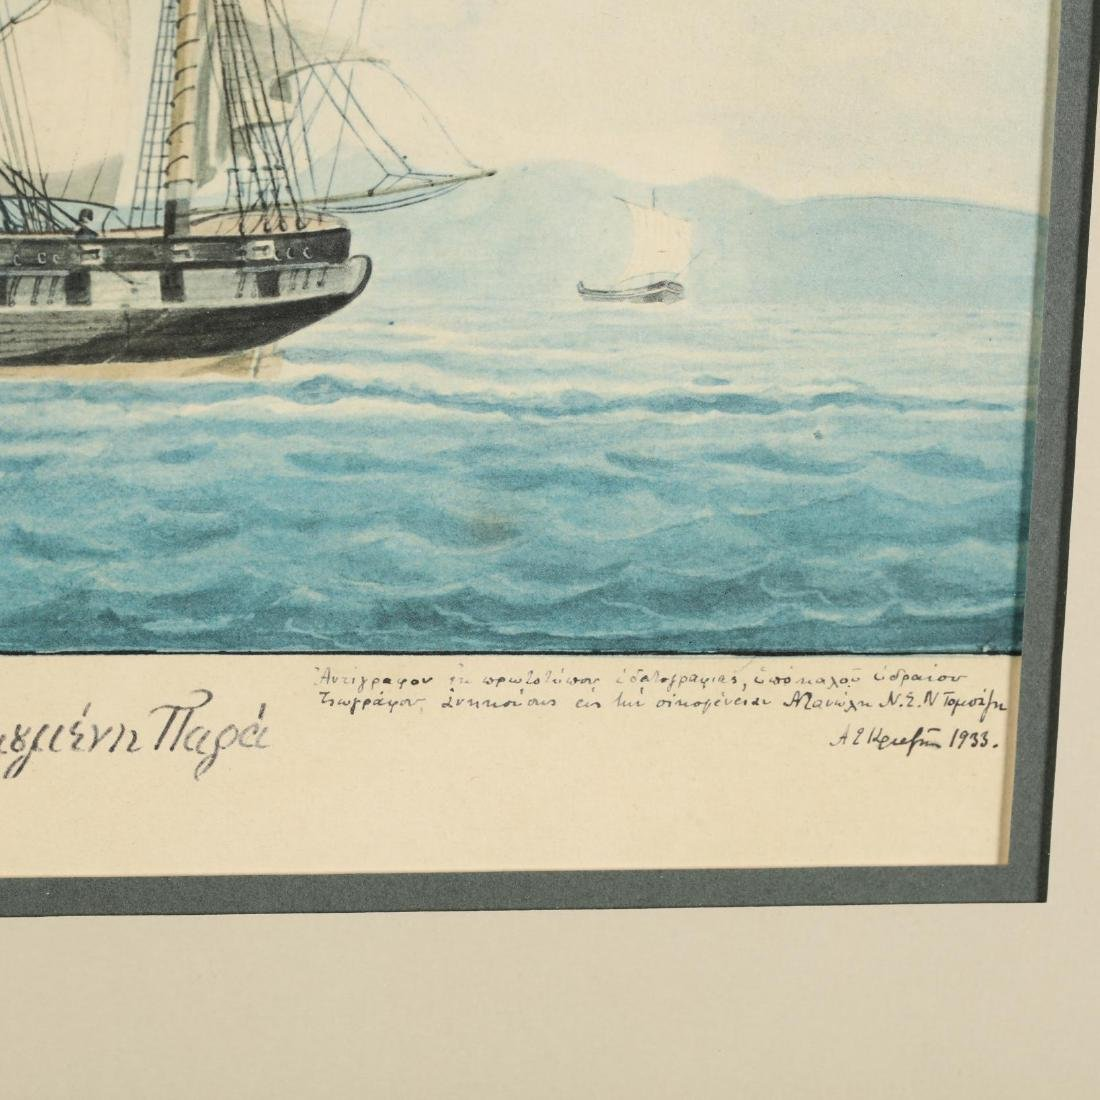 Pair of Prints Depicting Sailing Ships on the - 3